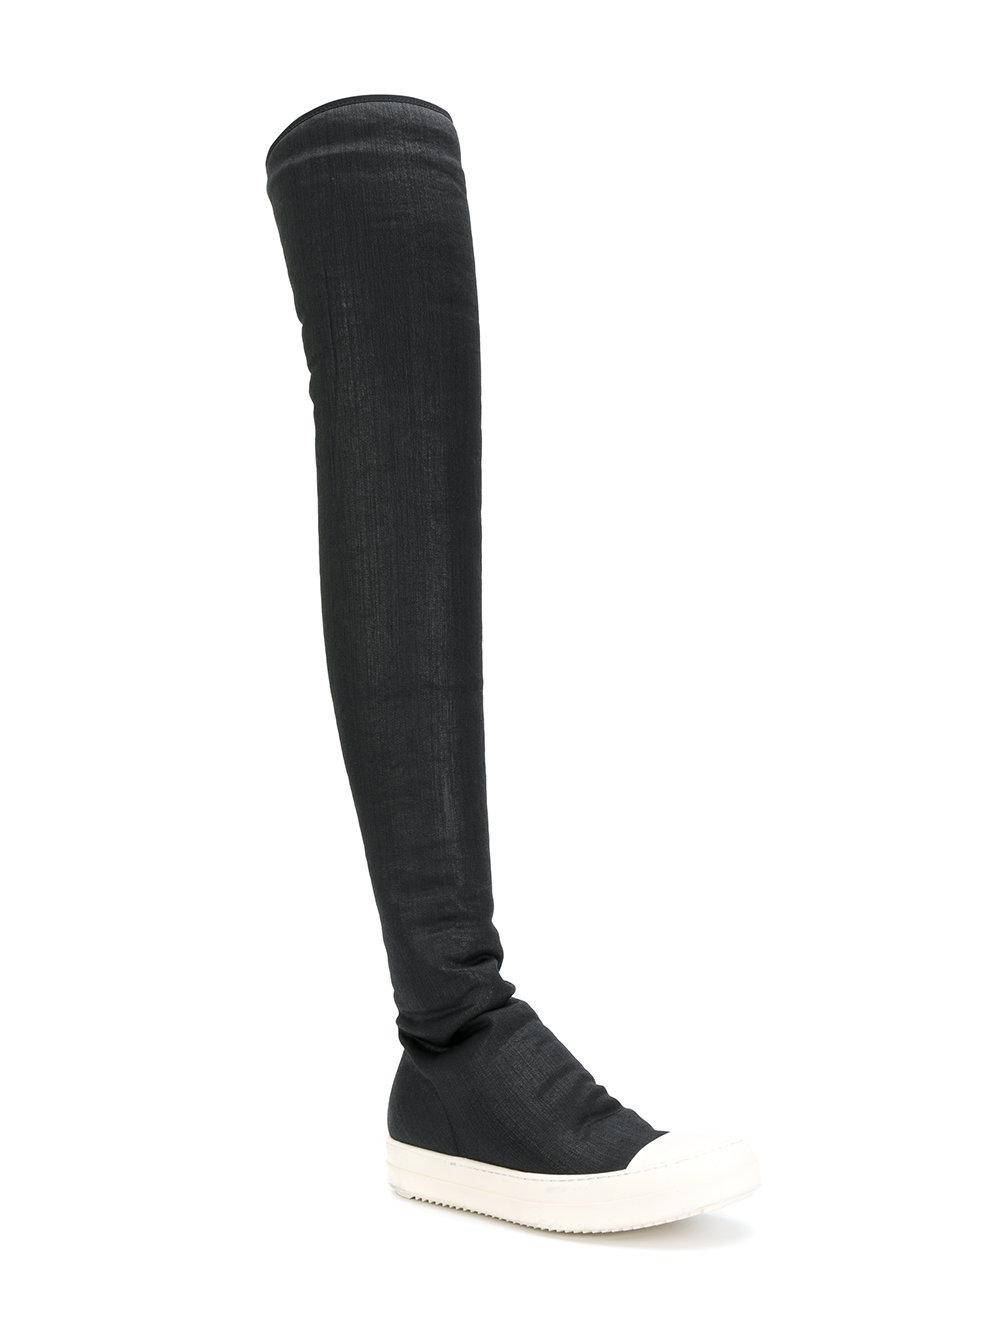 e855bf584793 Lyst - Rick Owens Drkshdw Black Over-the-knee Boots in Black - Save 43%